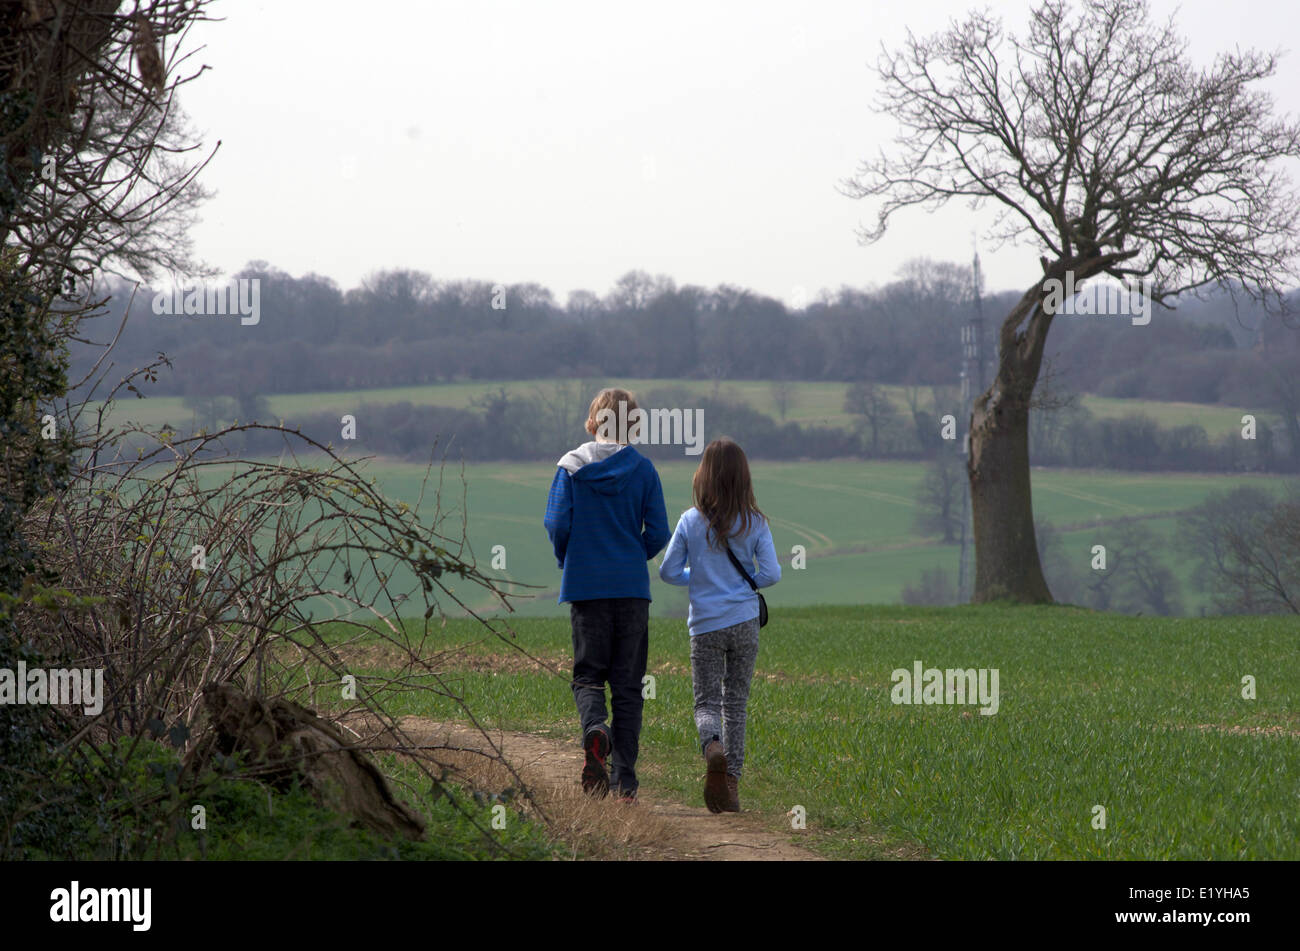 2 children walking outdoors in the springtime. Siblings -11 year old boy and 9 year old girl. - Stock Image